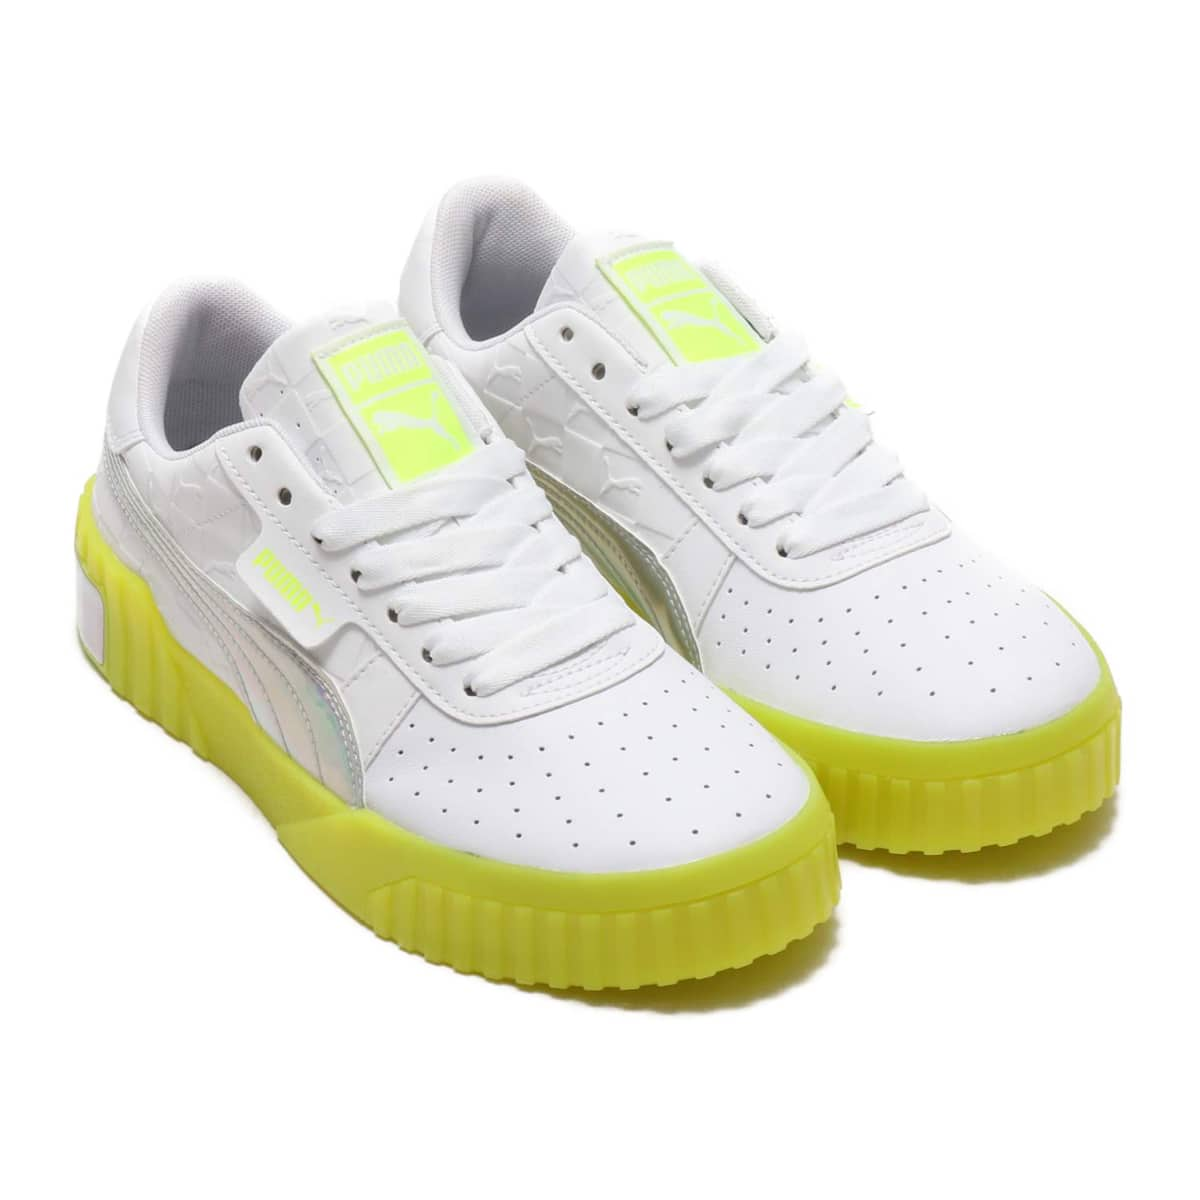 PUMA CALI WMNS x ATMOS  PUMA WHITE-SAFETY YELLOW 19SP-I_photo_large